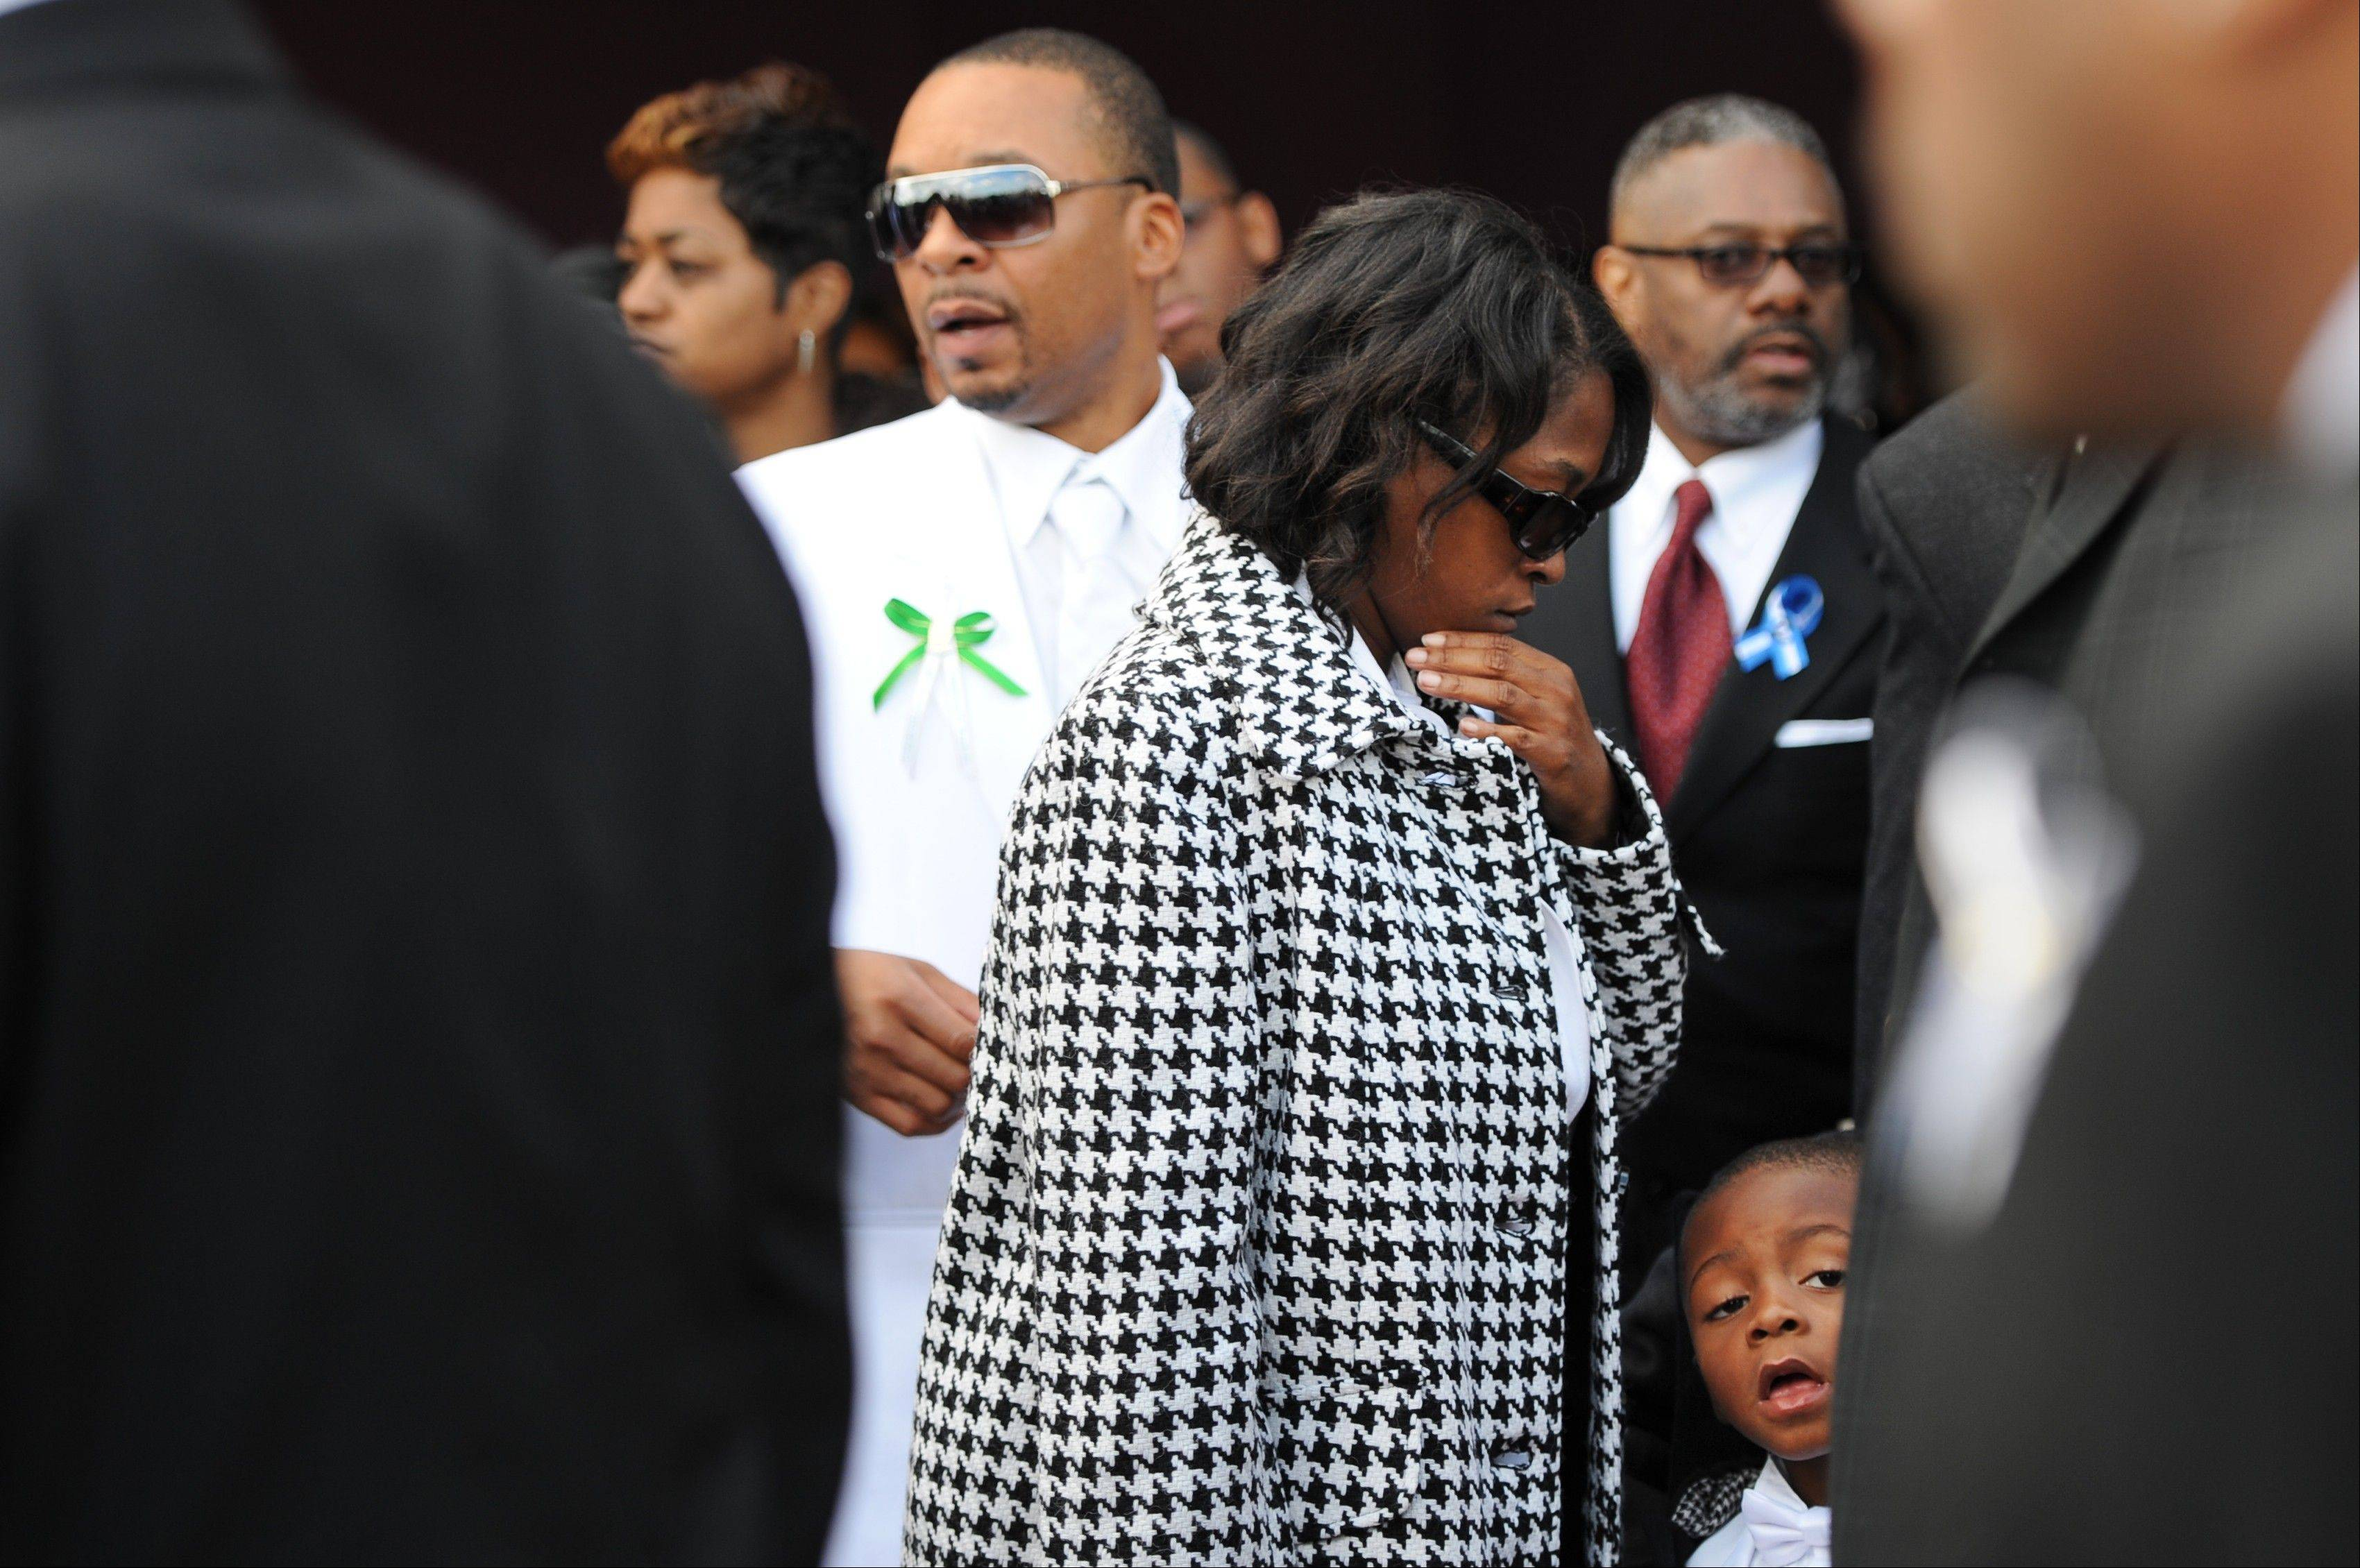 Tanesha Reed, center, stands in front of her husband, Carl, as they exit the church following a funeral service for her eldest son, Eastern Michigan football player, Demarius Reed at Holy Temple Cathedral in Harvey, Ill., on Saturday, Oct. 26, 2013. Reed was repeatedly shot Oct. 18 in what police say may have been a robbery. (AP Photo/AnnArbor.com, Melanie Maxwell) LOCAL TV OUT; LOCAL INTERNET OUT; ONLN OUT; IONLN OUT